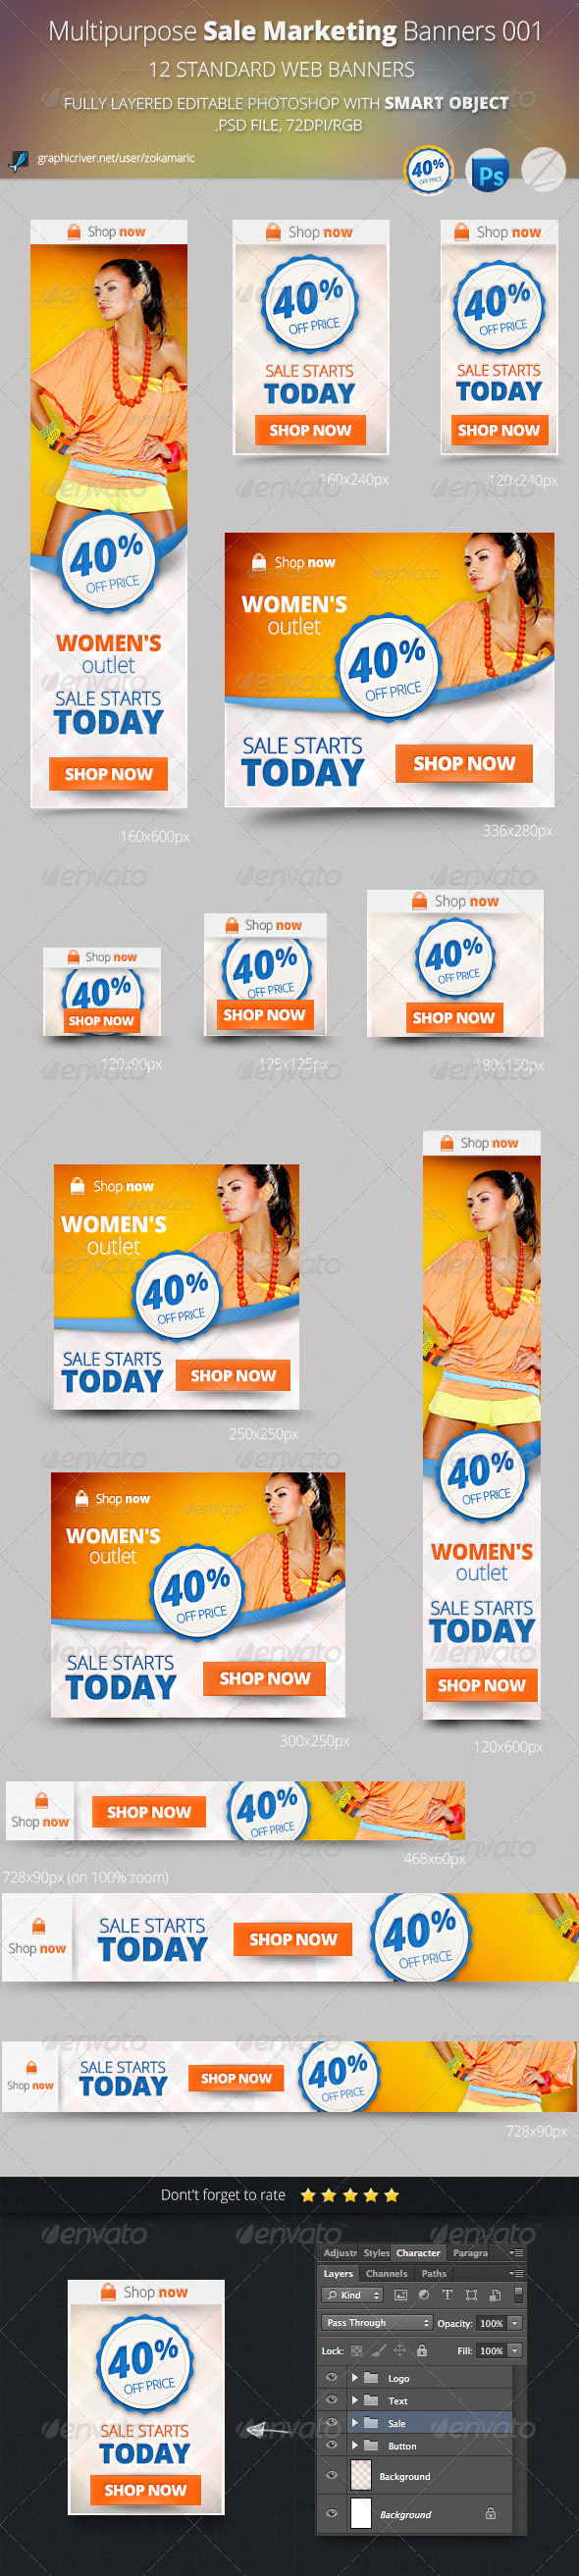 Multipurpose Sale Marketing Banners 001 - Banners & Ads Web Elements